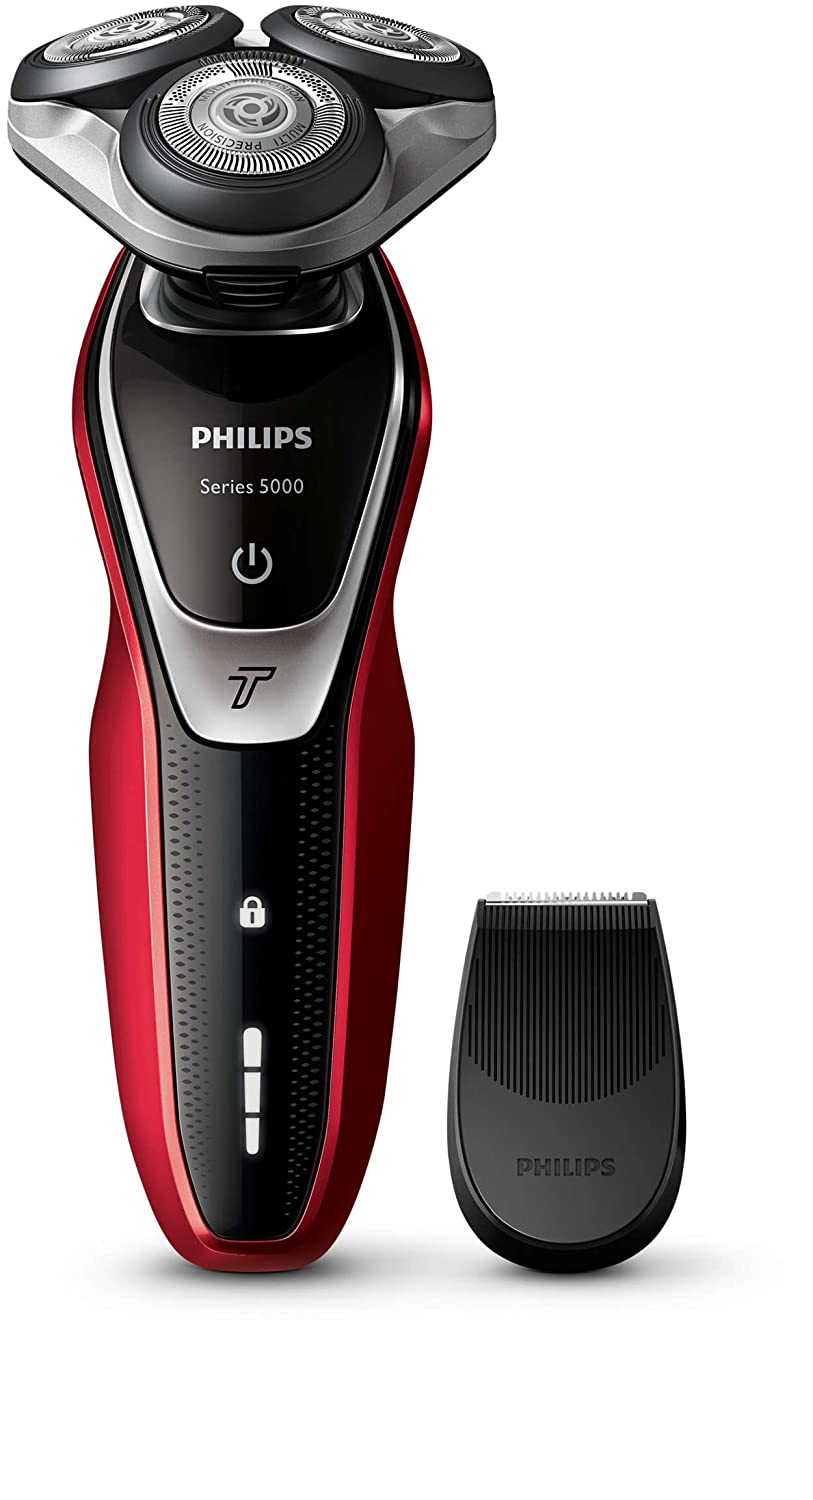 Philips Series 5000 Wet and Dry Men's Electric Shaver with Precision Trimmer Beard Detailer (UK 2-Pin Bathroom Plug) - S5340/06